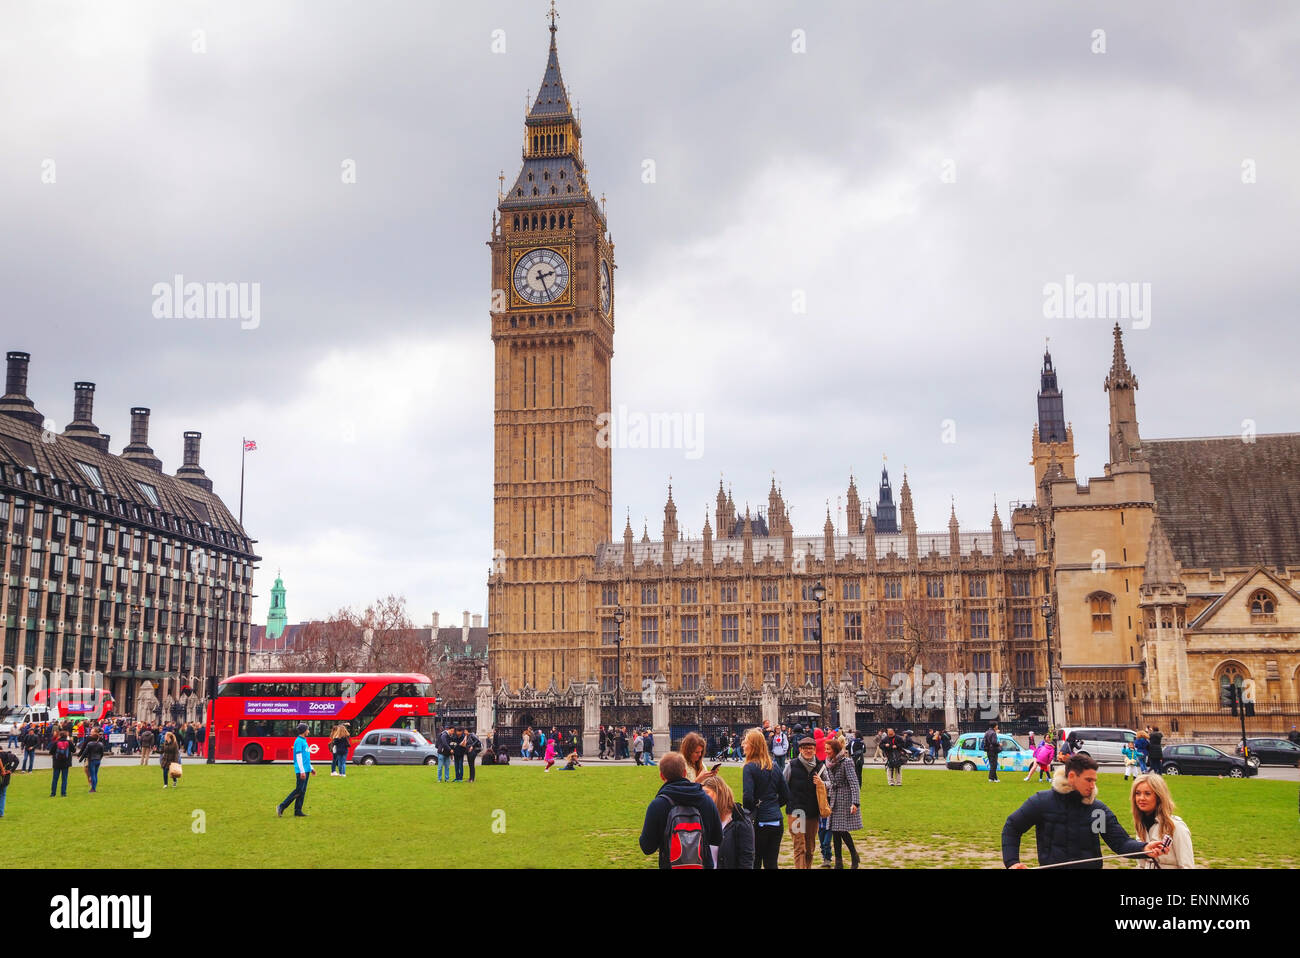 LONDON - APRIL 4: Parliament square with people in city of Westminster on April 4, 2015 in London, UK. - Stock Image